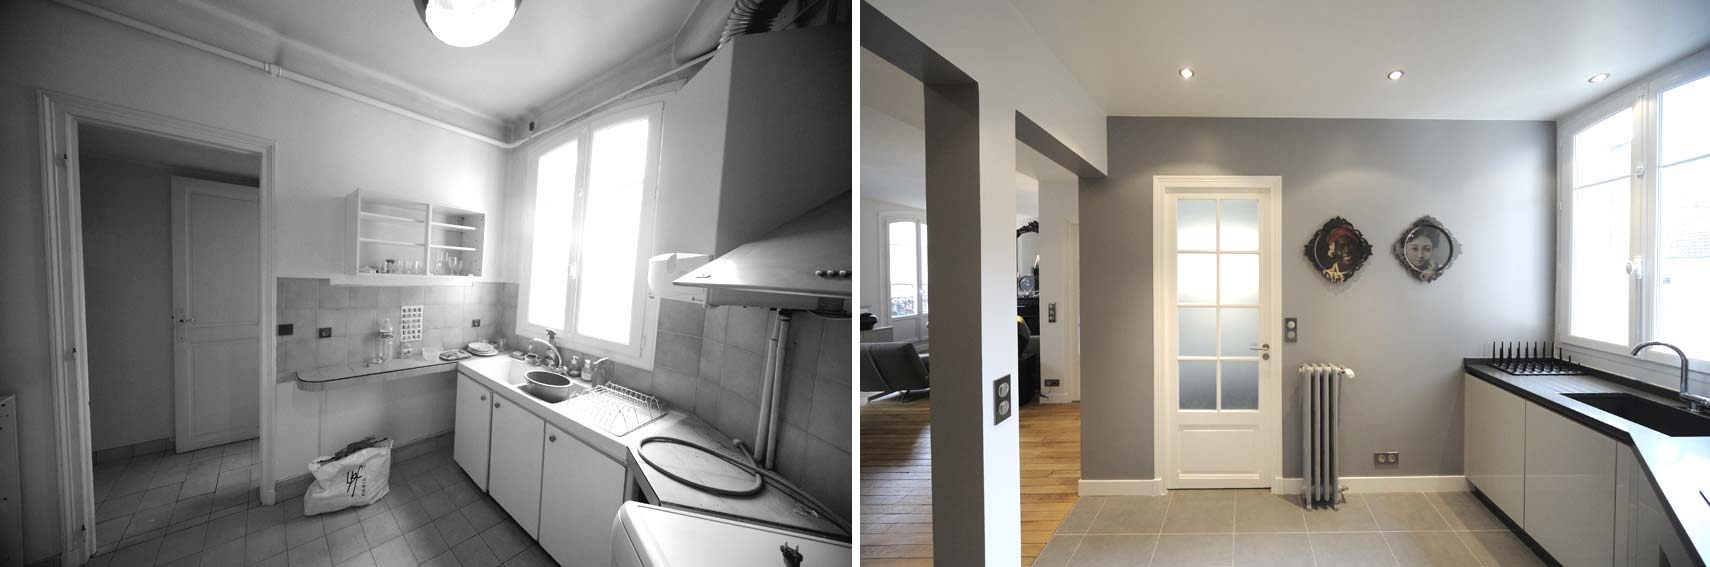 Avant Apr S Transformation D 39 Un Appartement De 65m2 Du